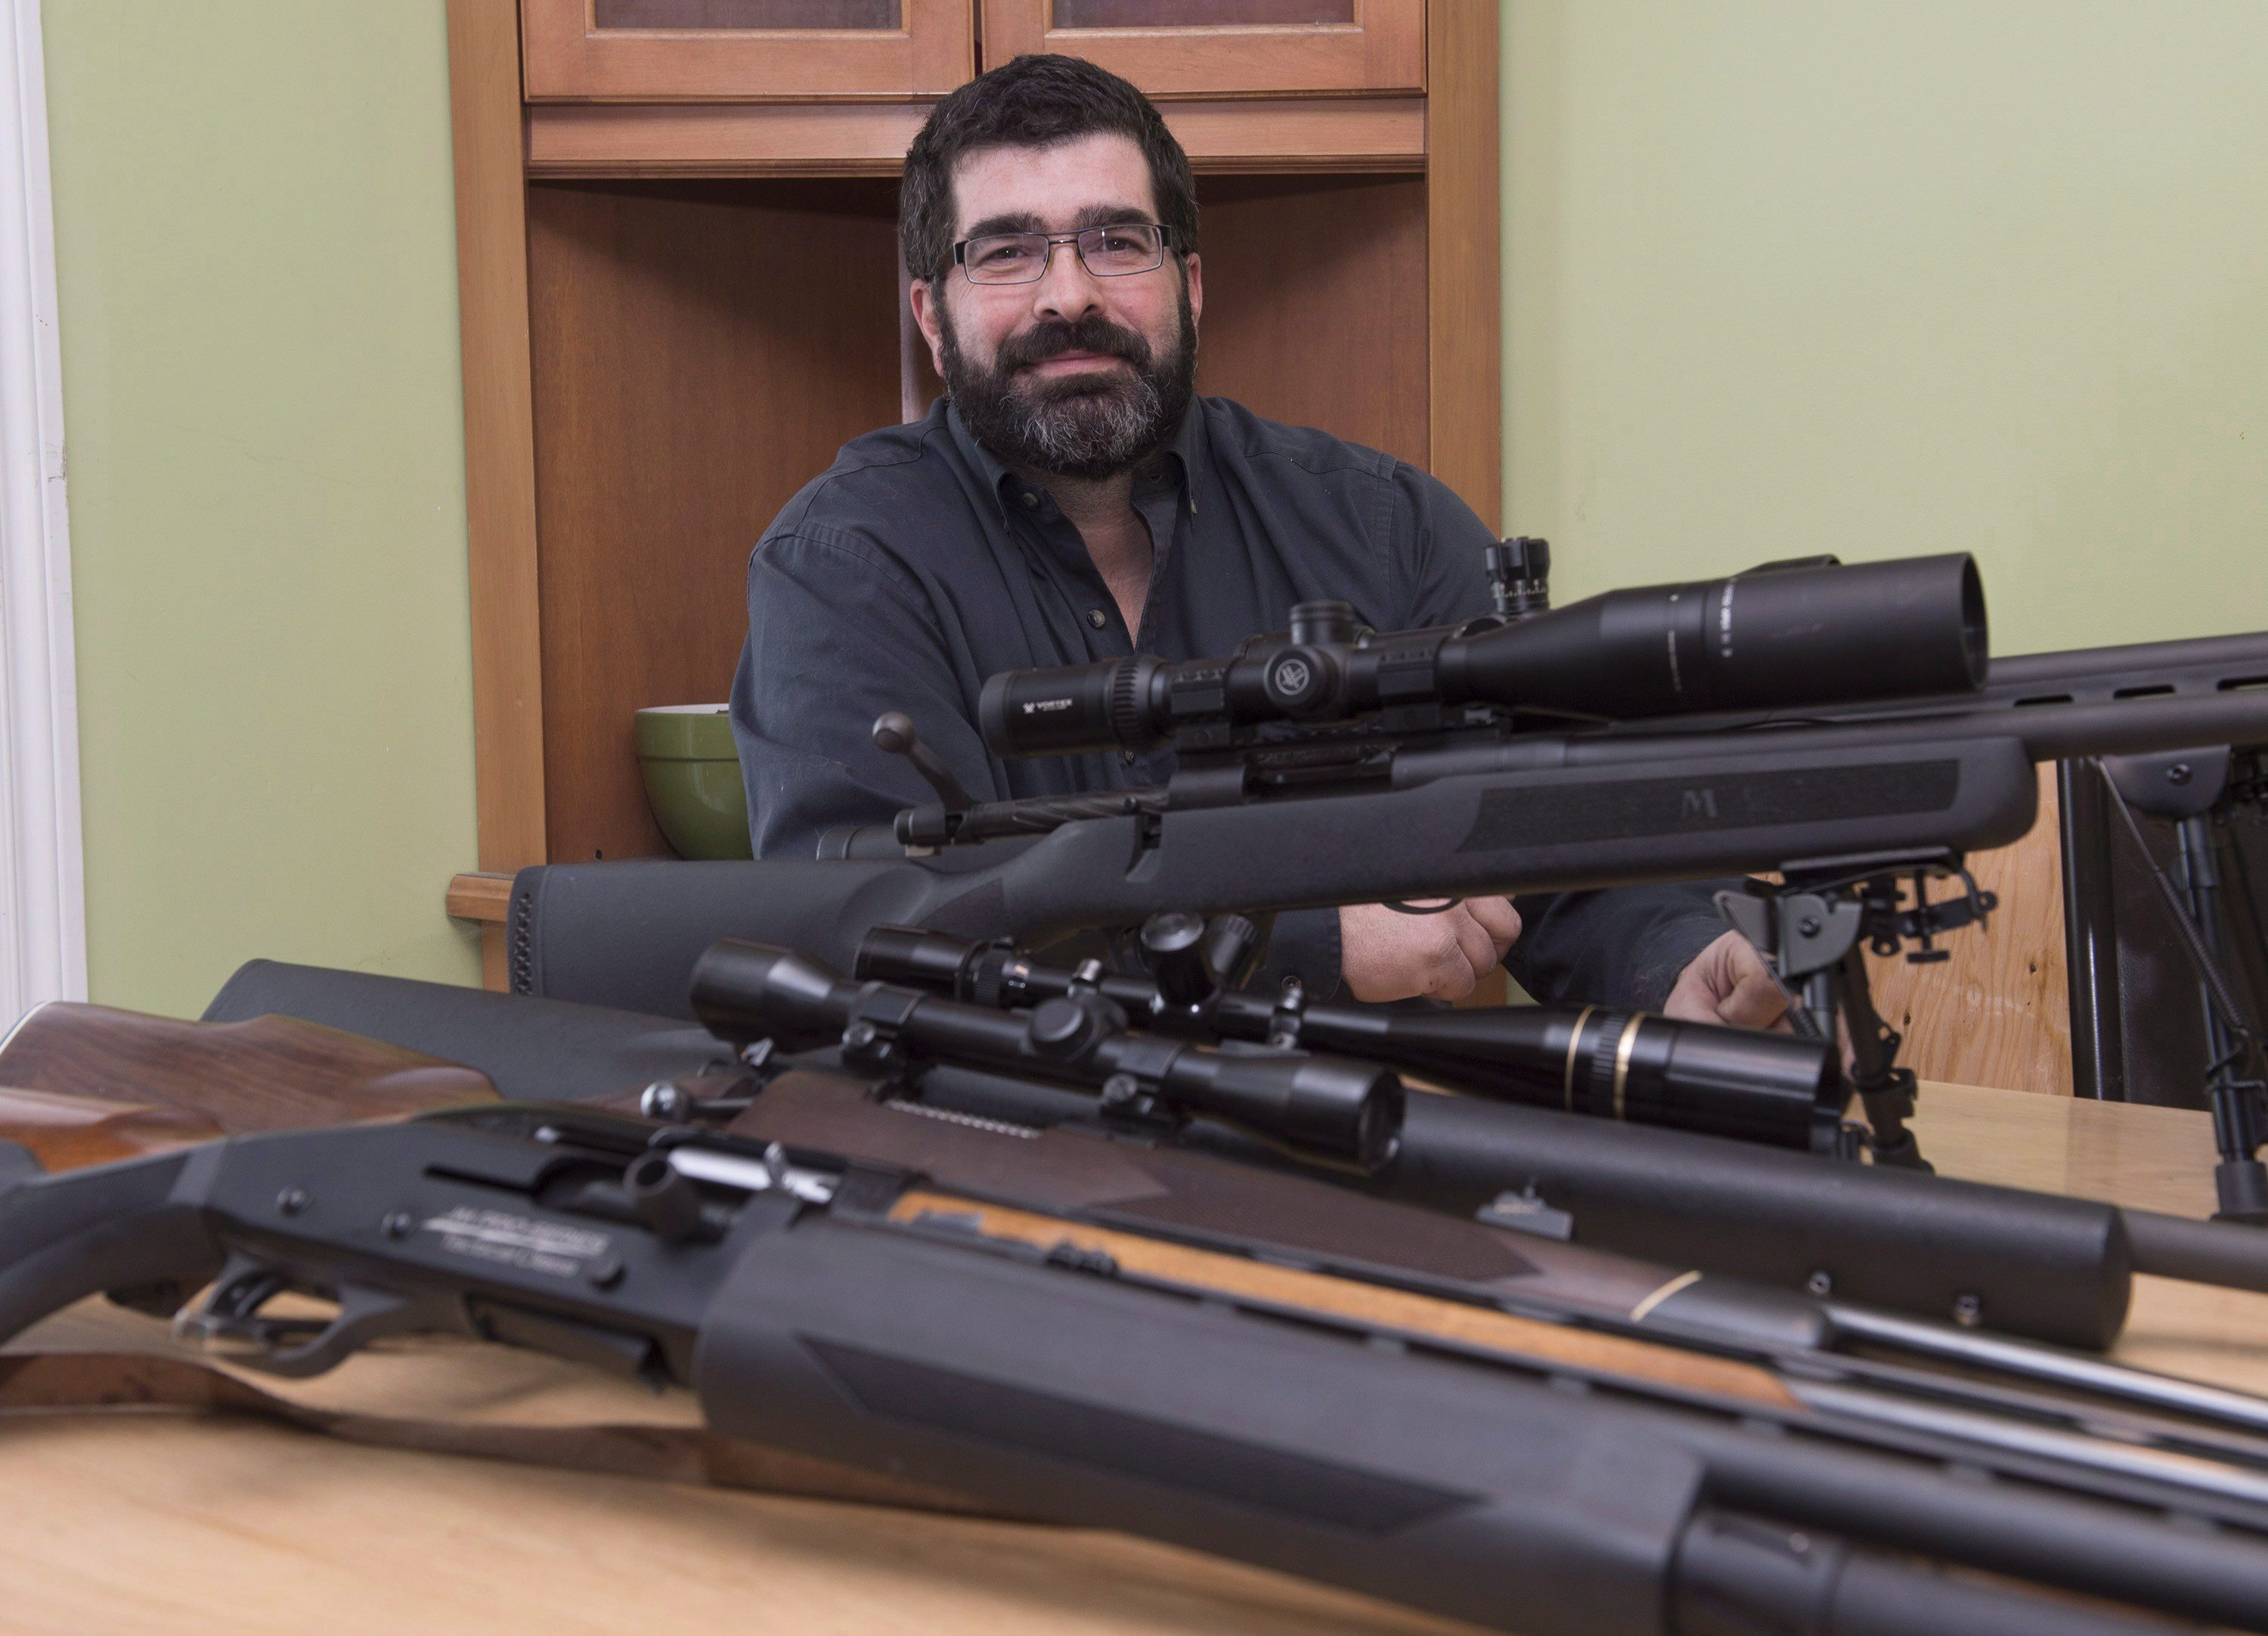 30 years after Polytechnique massacre Canada's gun debate